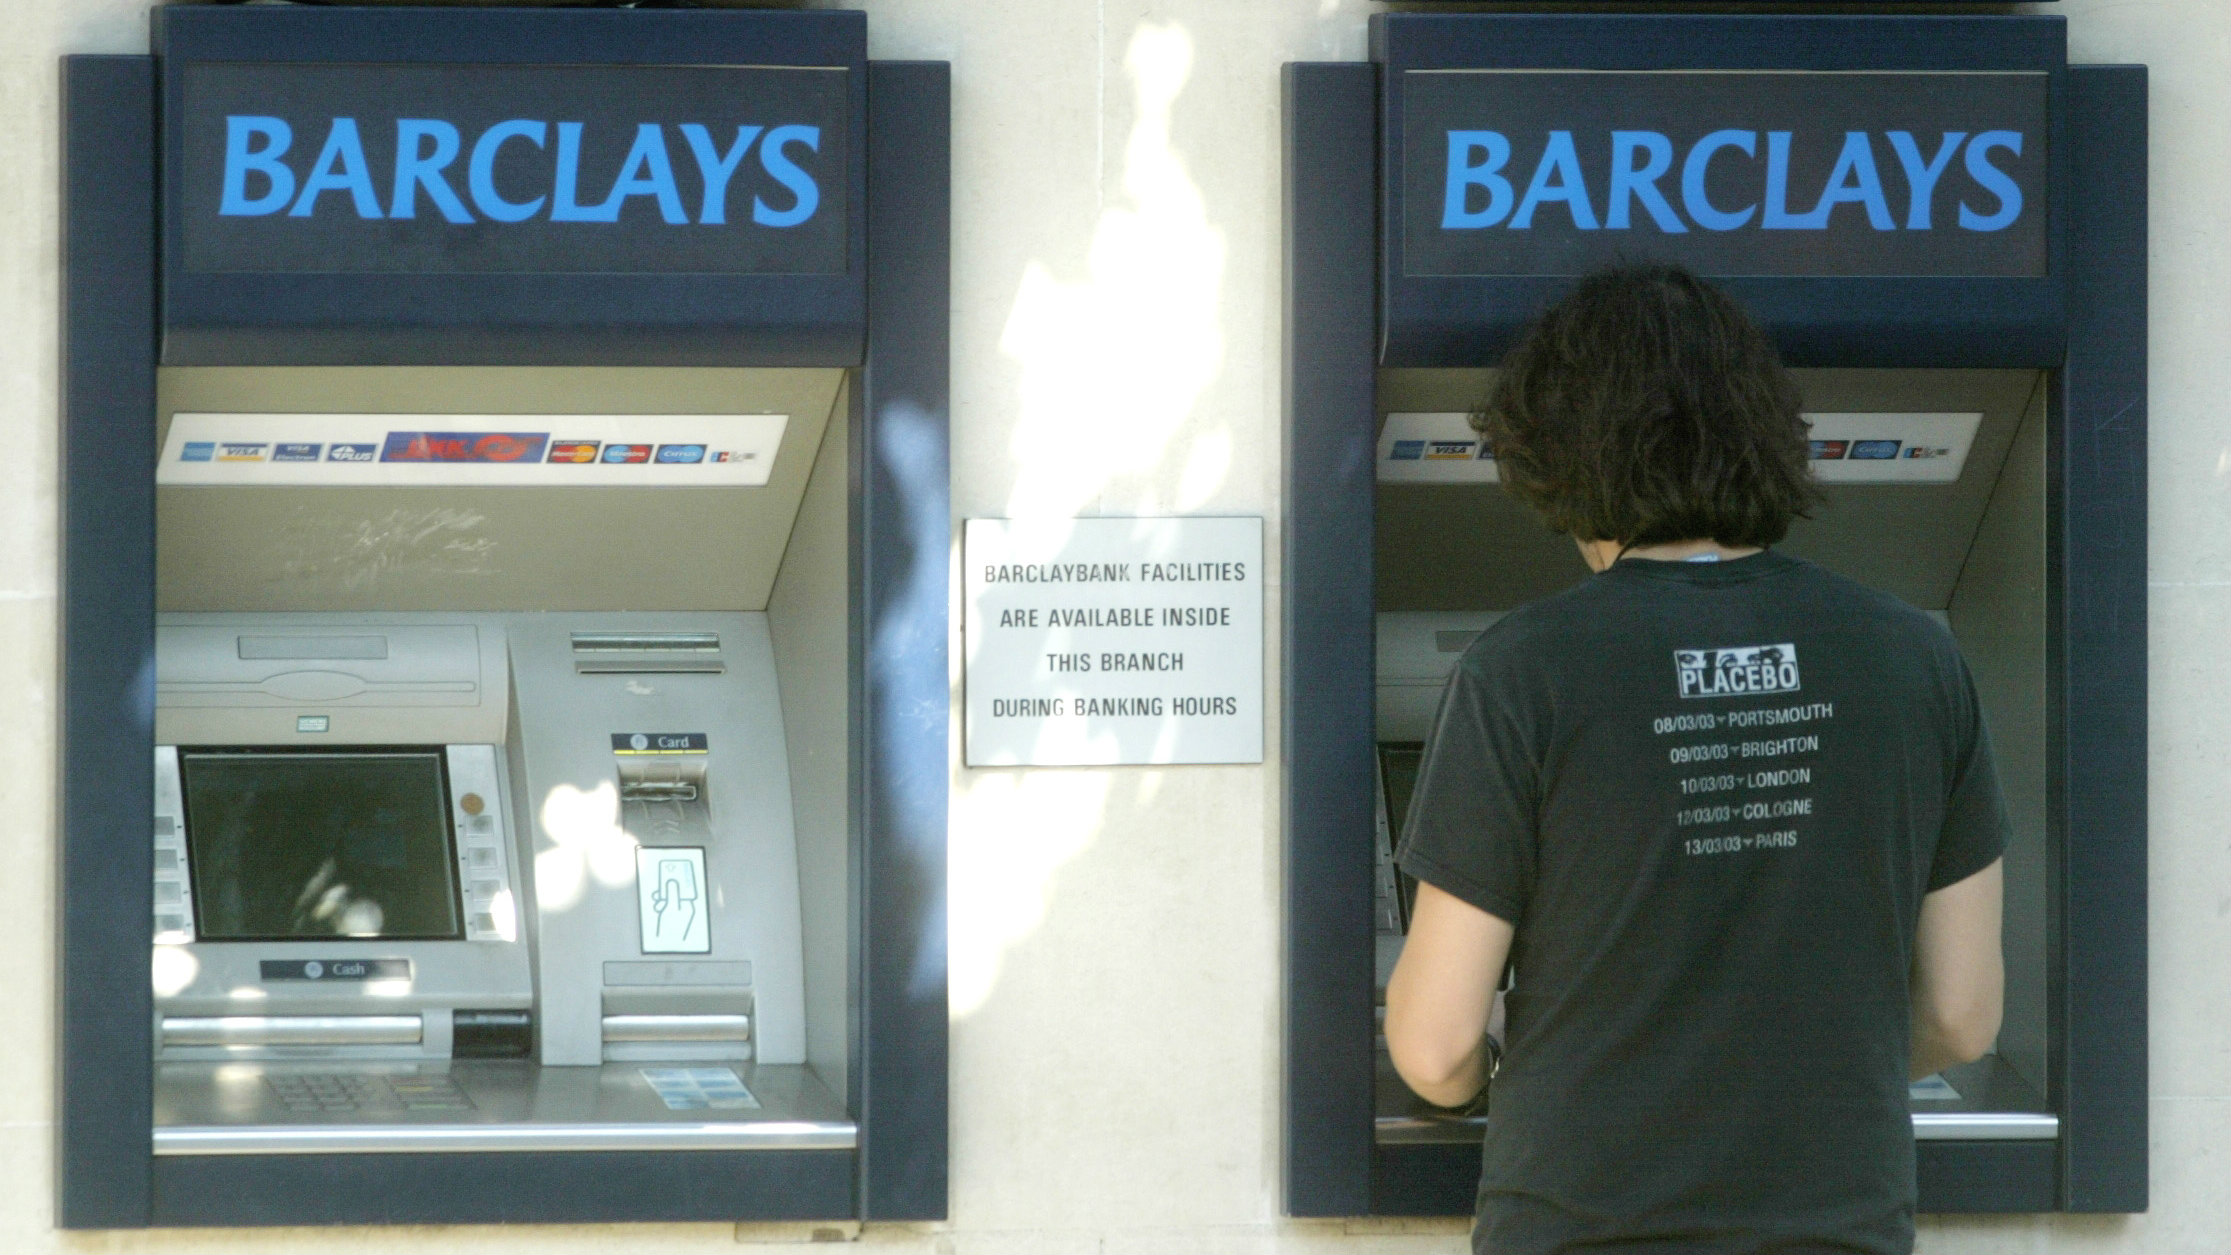 Barclays Bank cash machines in London